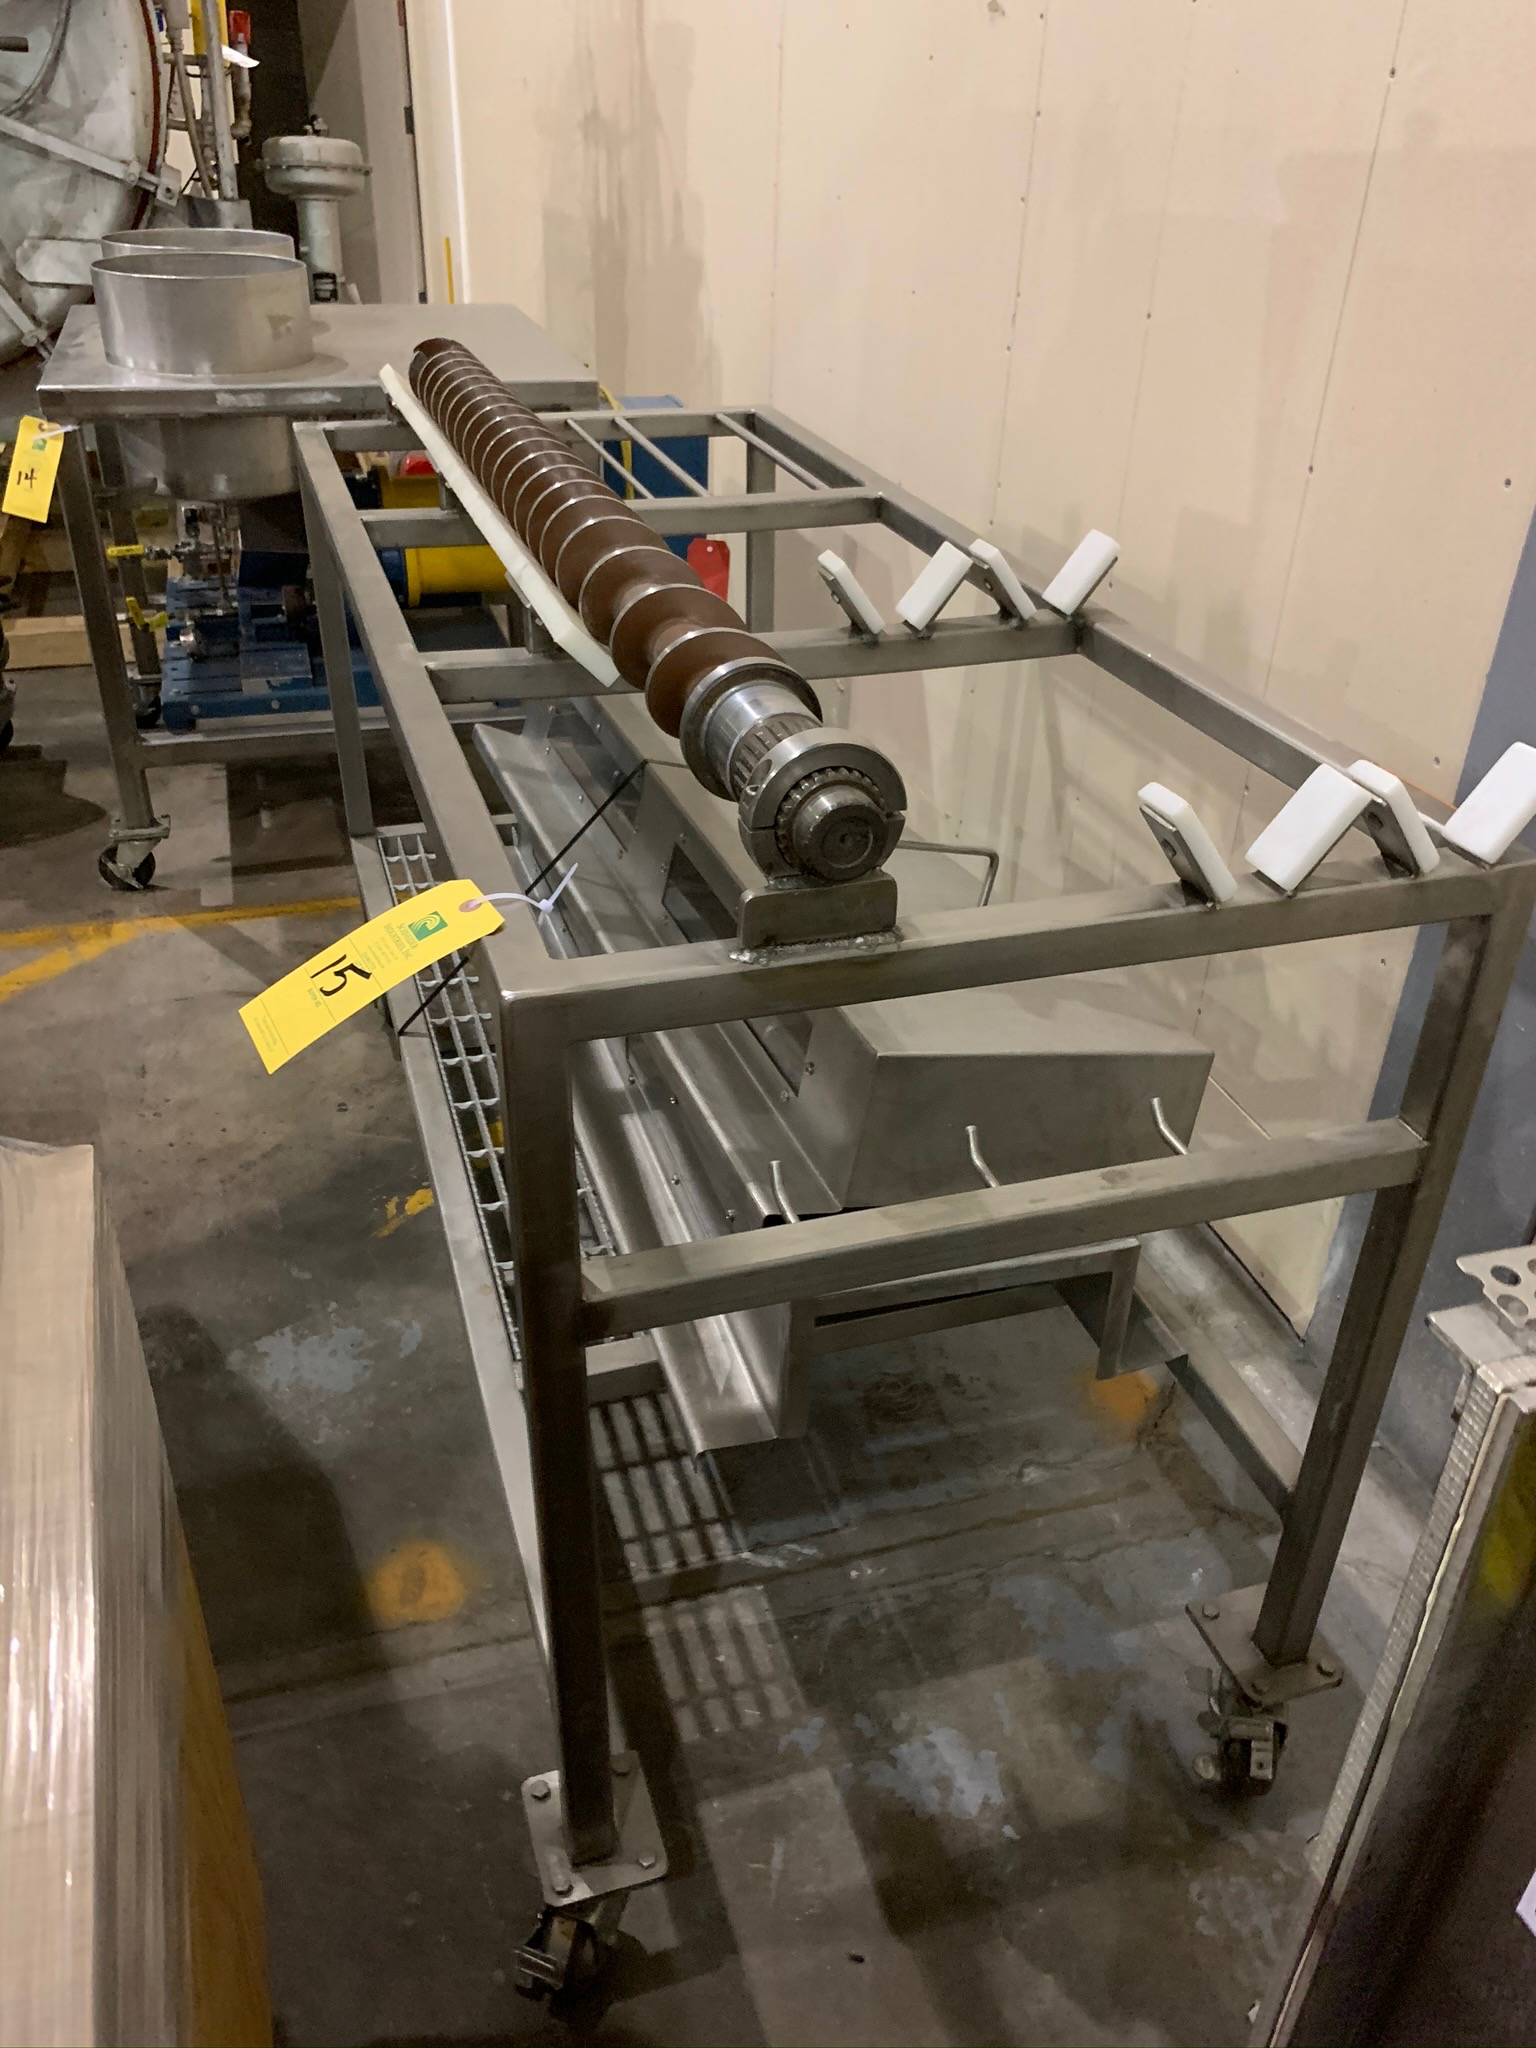 Lot 15 - Buhler Twin Screw Extruder Model M-MN-400 S/N 10321928 with Control Panels and Auger Cart, with (Rig